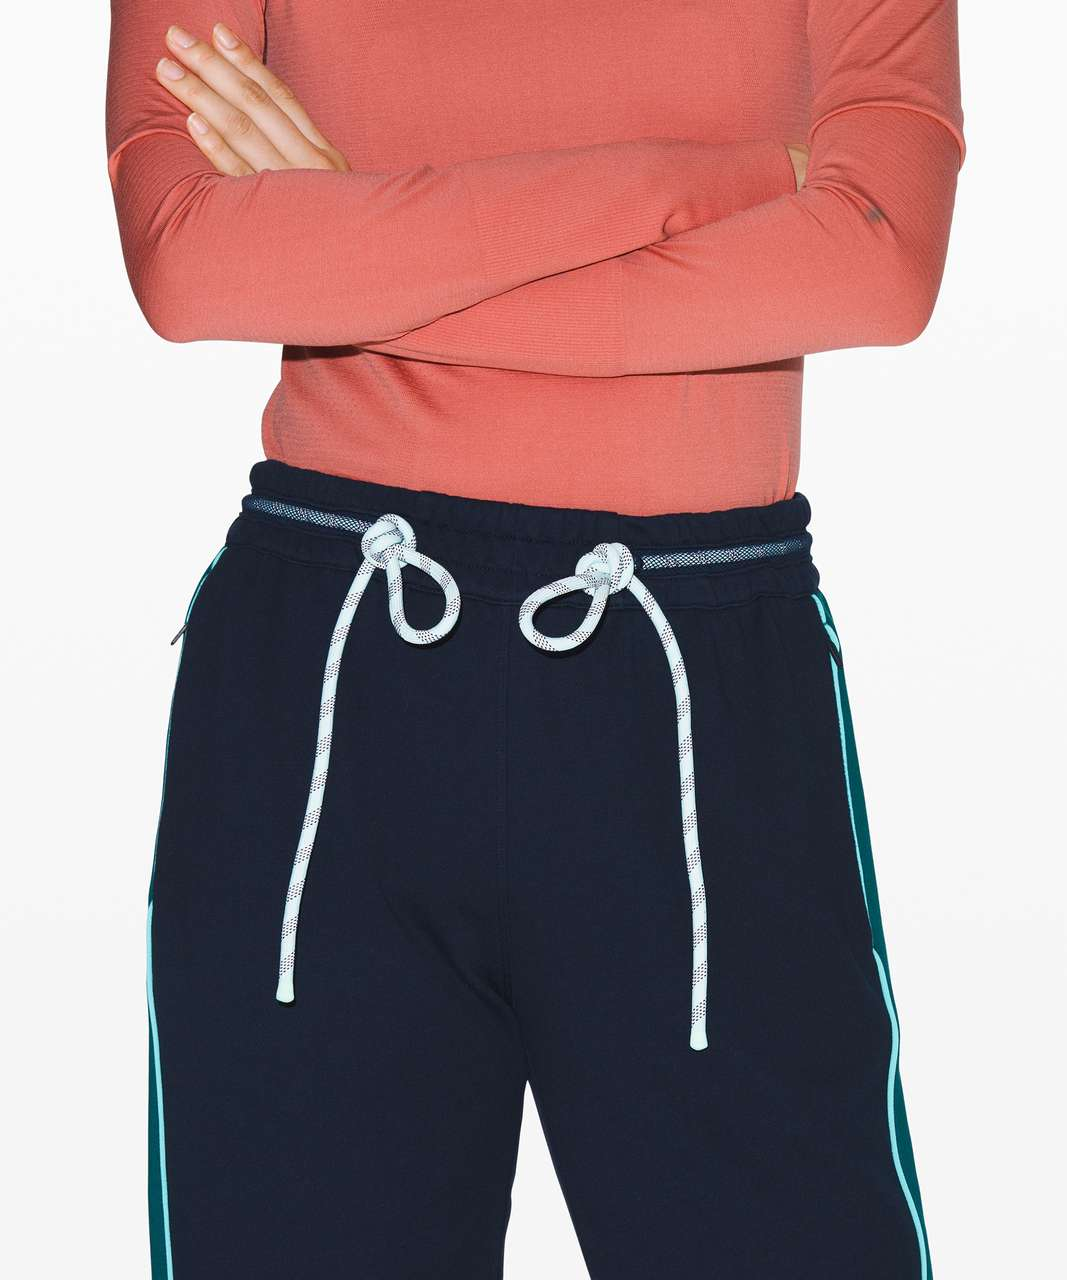 Lululemon Face Forward Jogger *lululemon x Roksanda - True Navy / Emerald / Arctic Teal